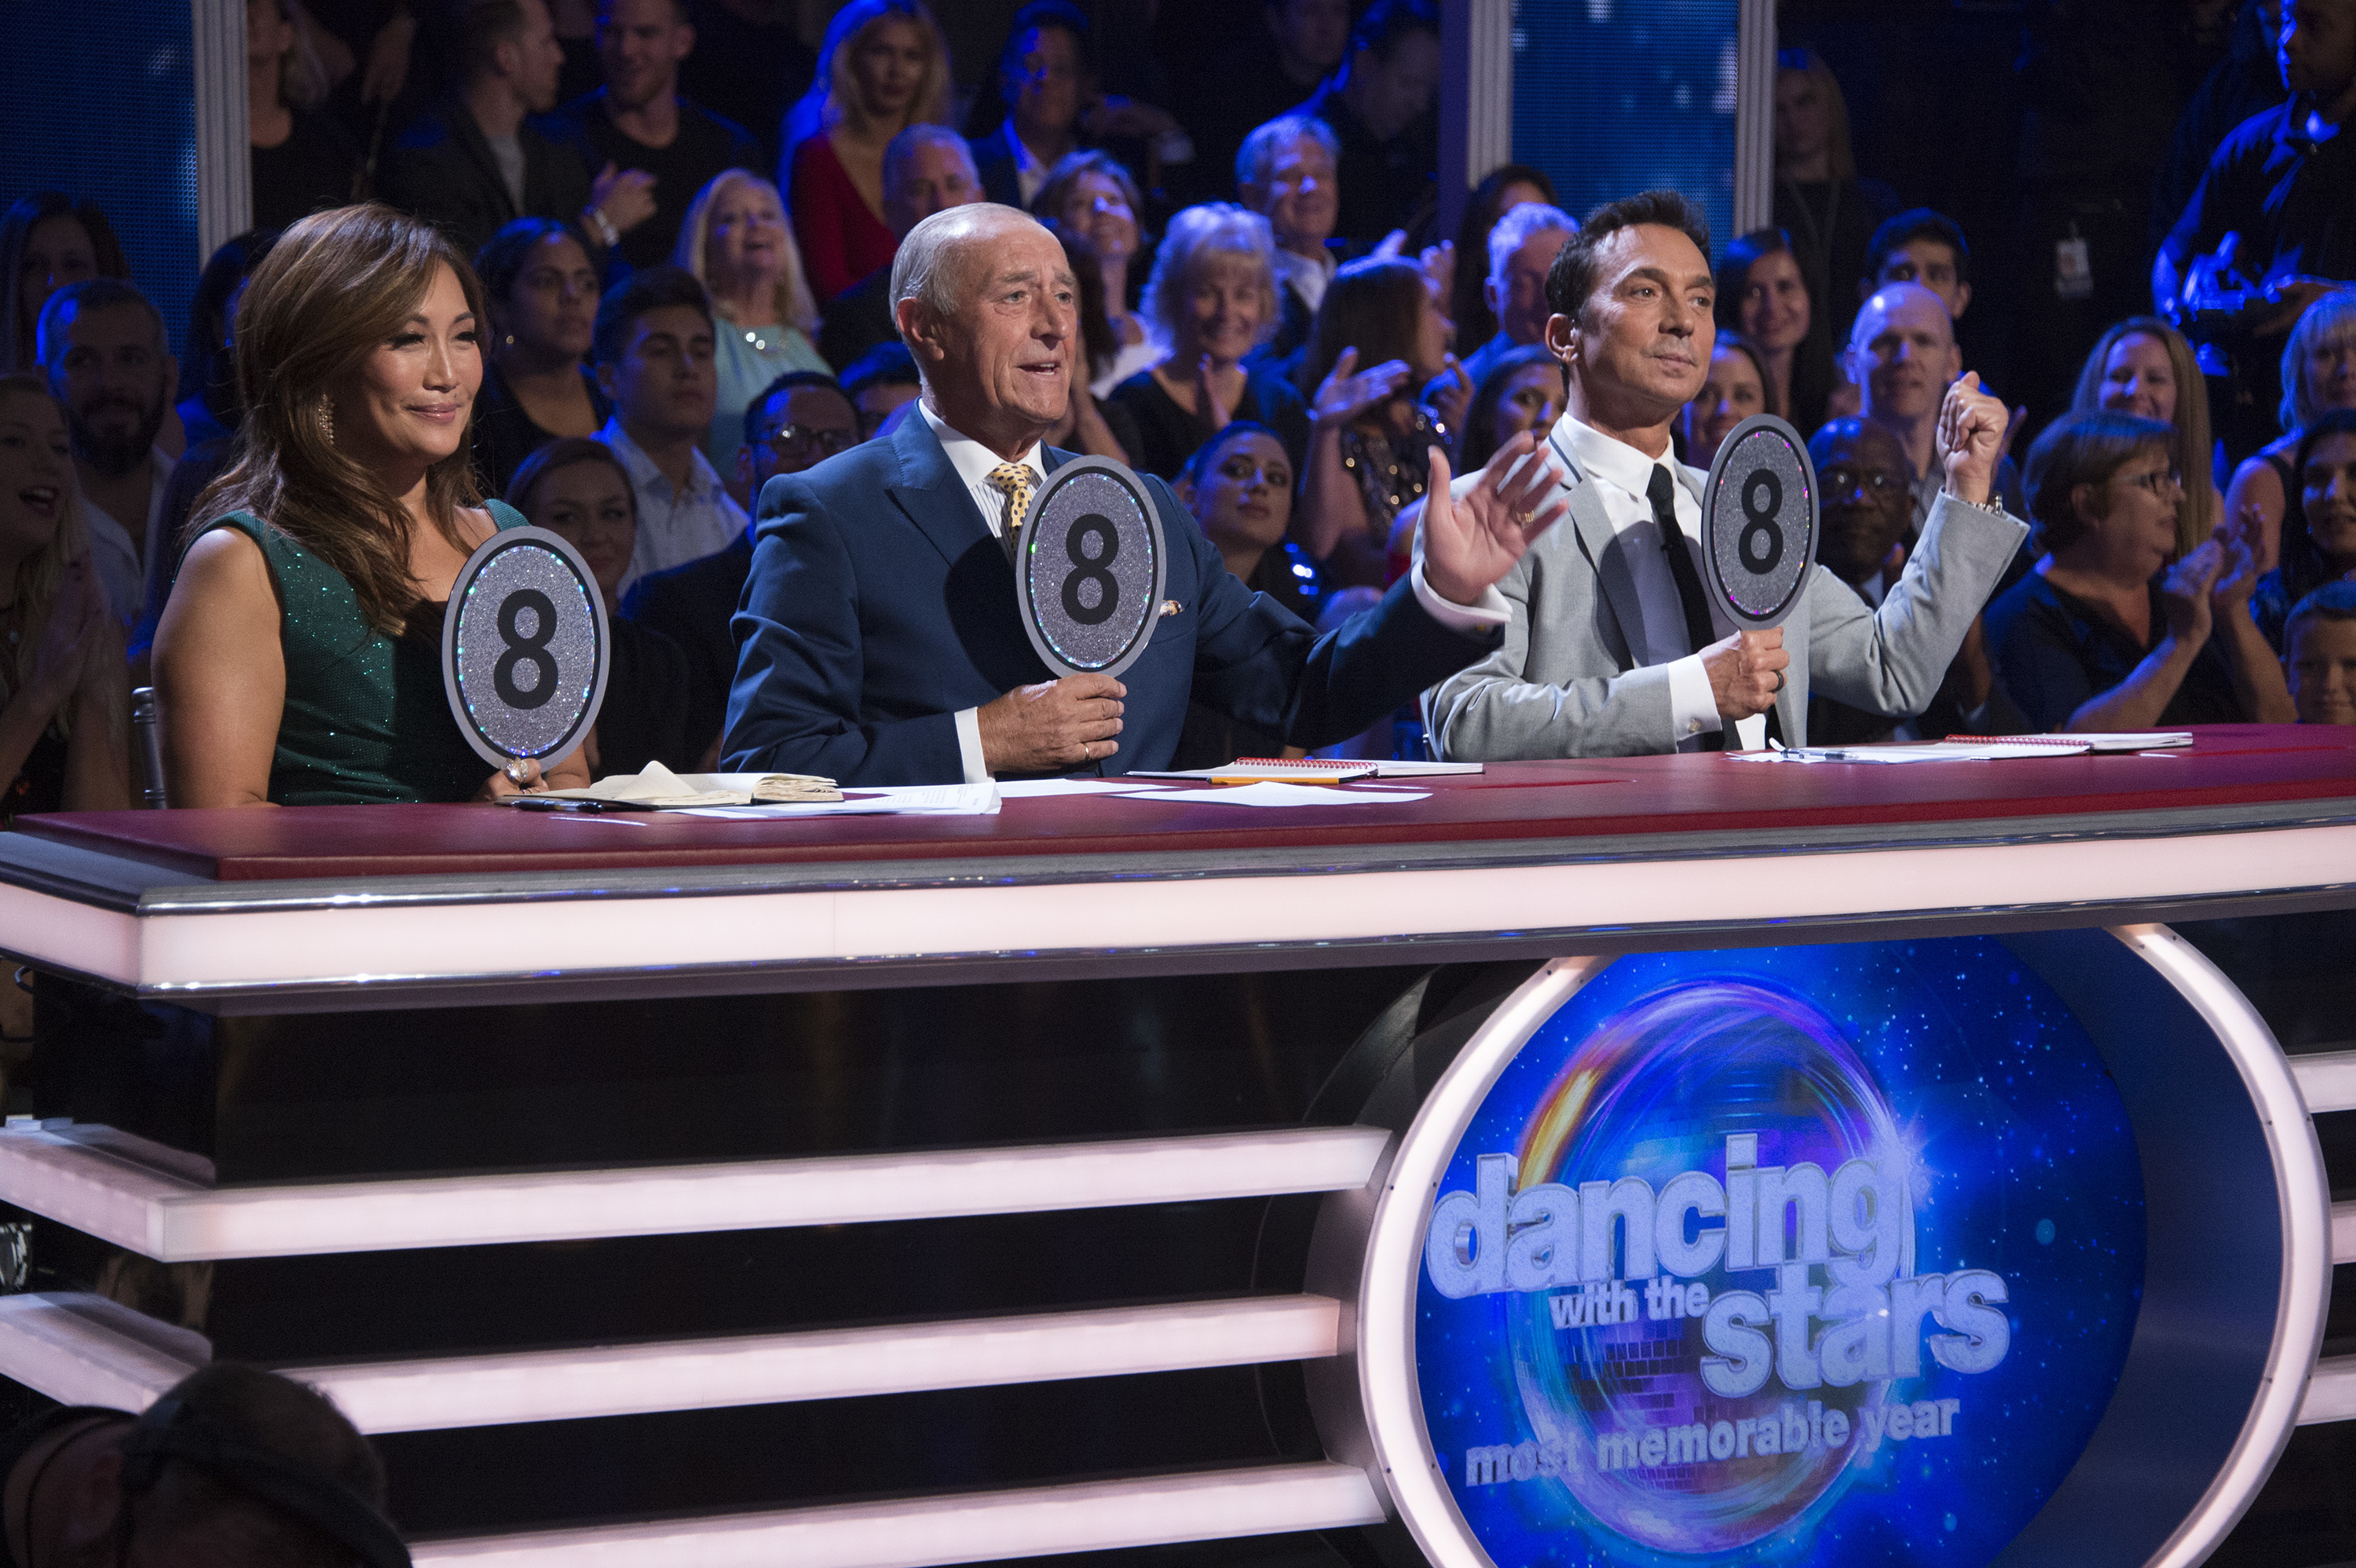 """Dancing with the Stars """"Season 25 Week 4"""" a.k.a. """"Most Memorable Year"""""""